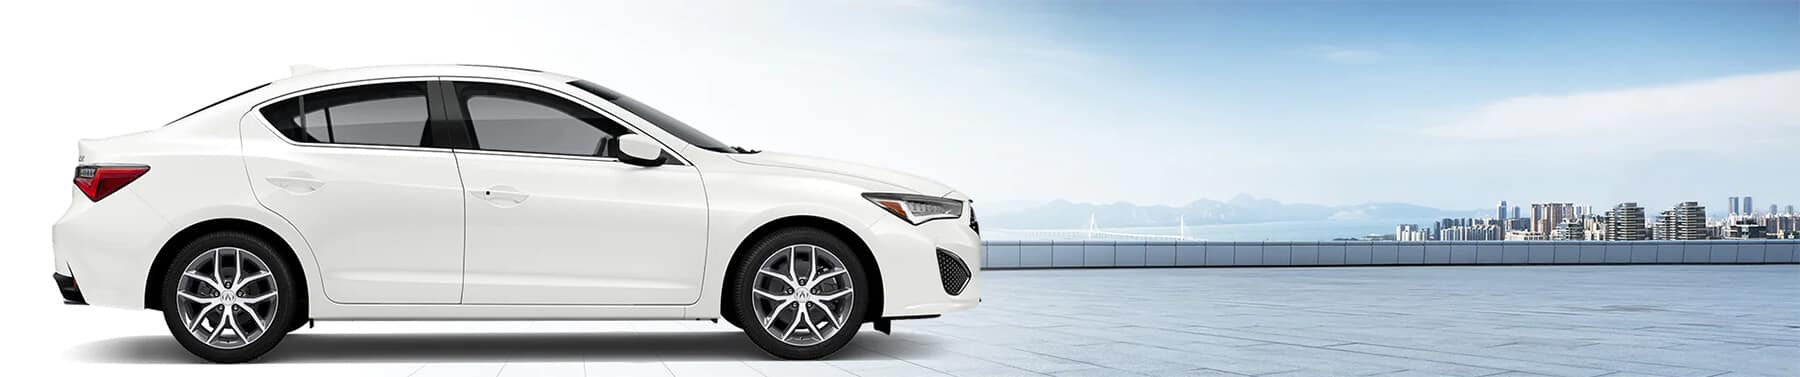 Acura ILX Lease Deals in Sioux Falls, SD Banner